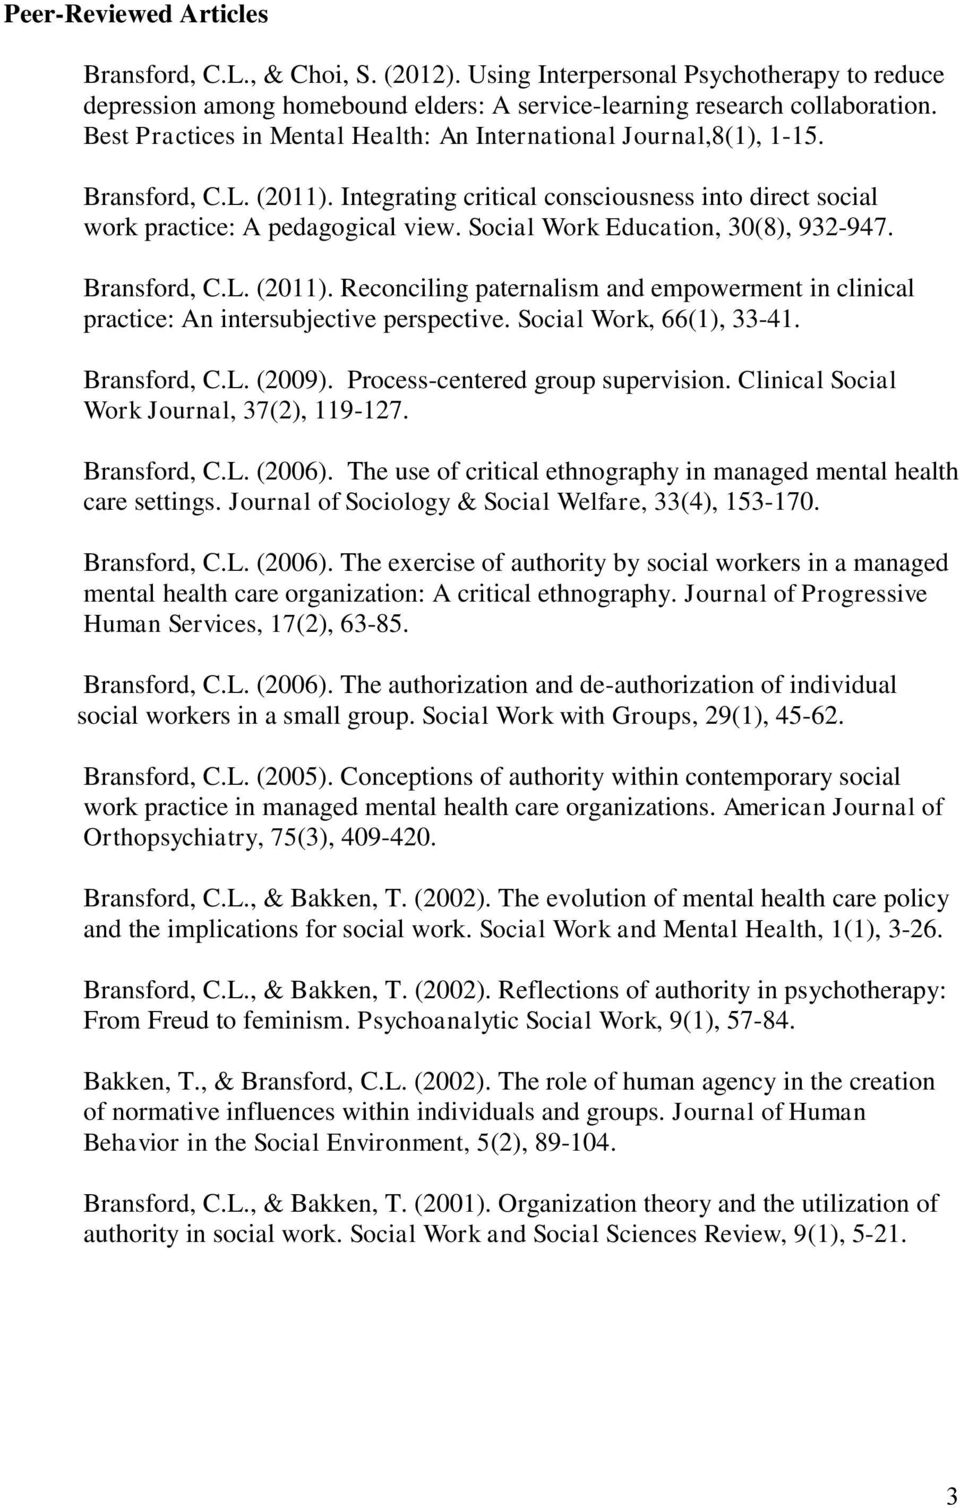 Social Work Education, 30(8), 932-947. Bransford, C.L. (2011). Reconciling paternalism and empowerment in clinical practice: An intersubjective perspective. Social Work, 66(1), 33-41. Bransford, C.L. (2009).